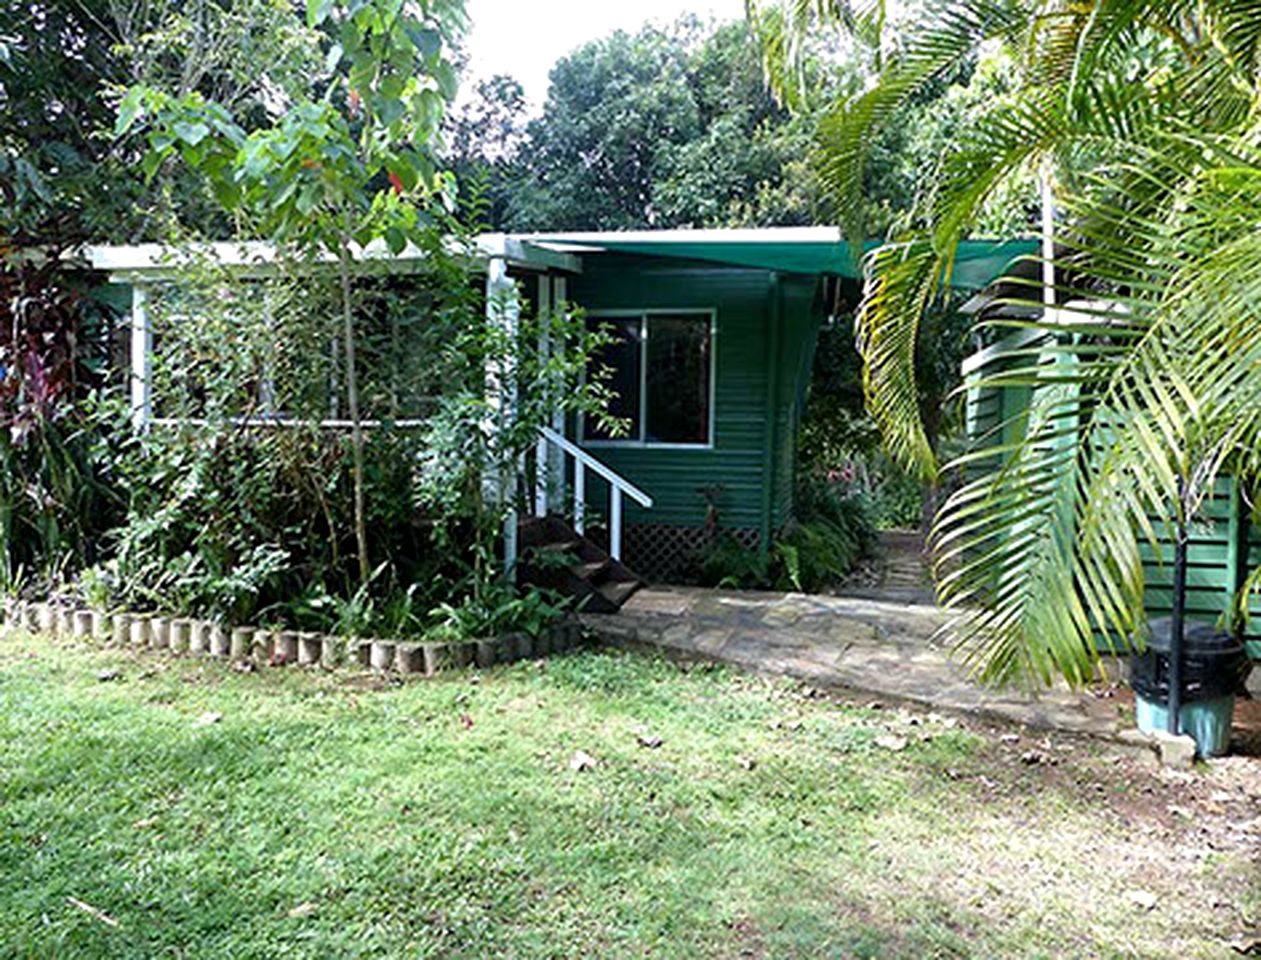 Cottages (Lake Eacham, Queensland, Australia)